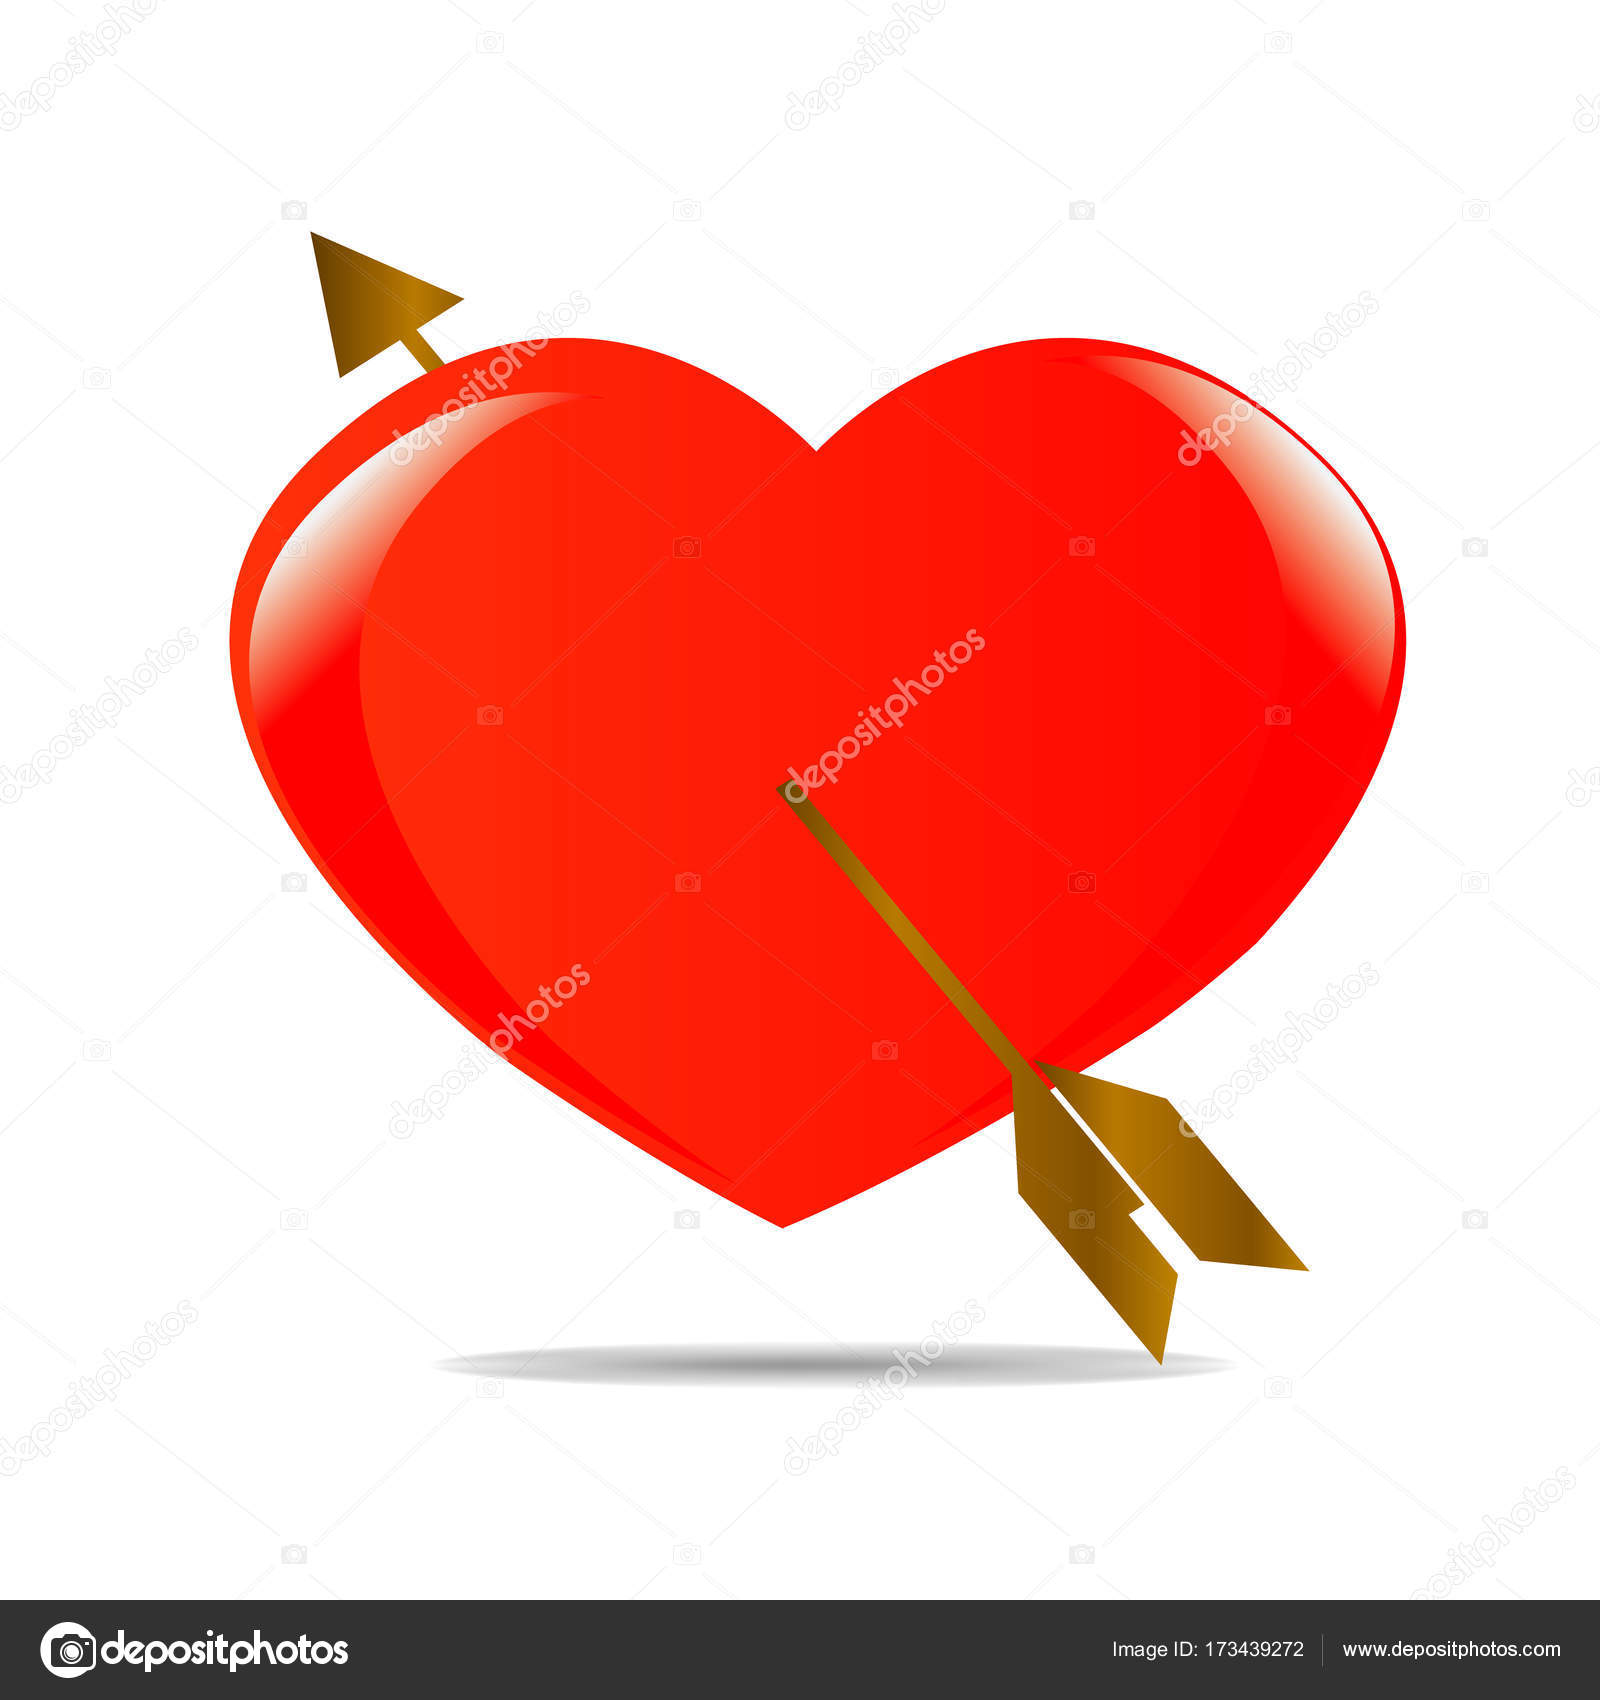 Red heart and golden arrow with shadow symbol love icon